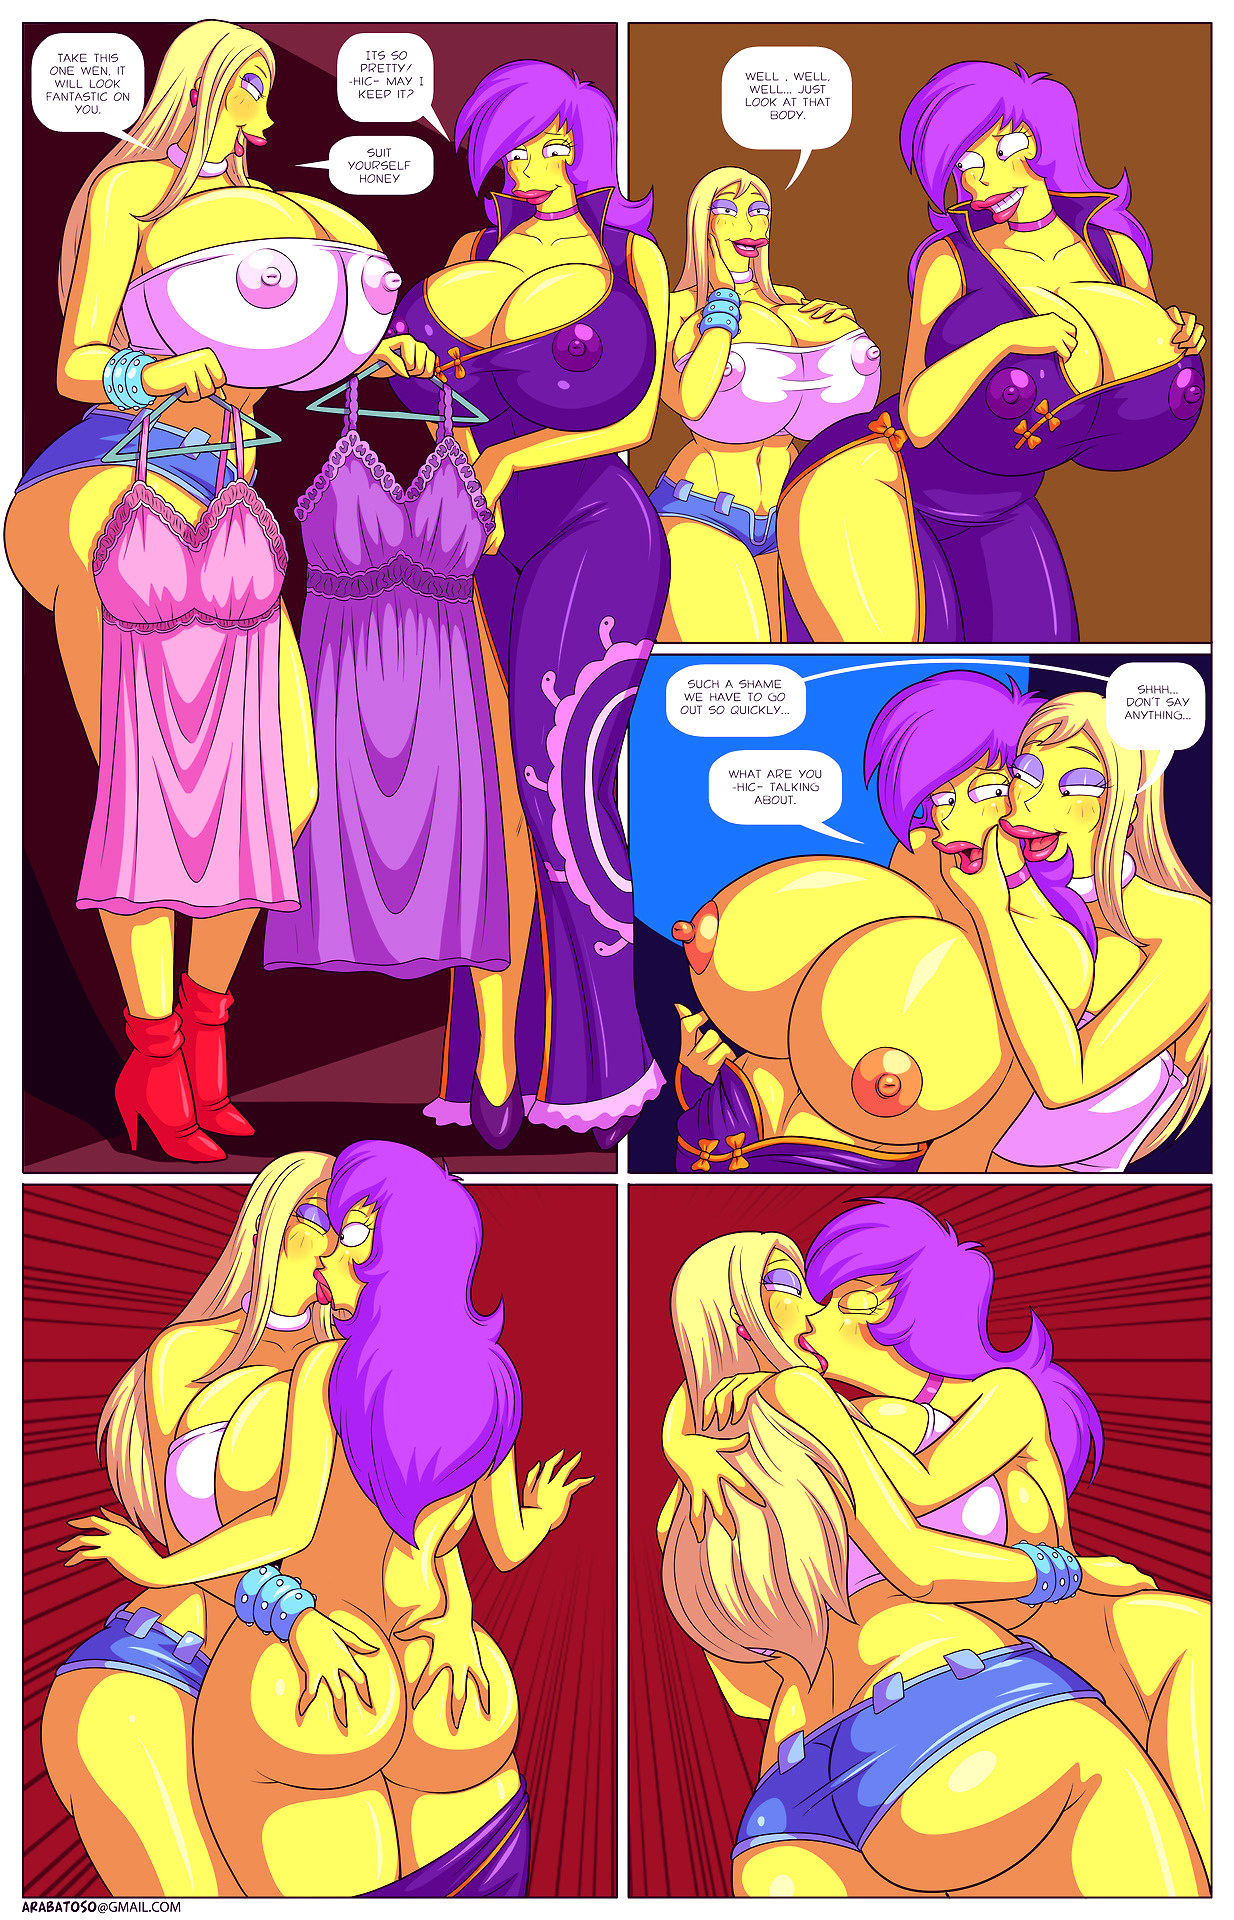 Darrens adventure or welcome to springfield porn comic picture 56